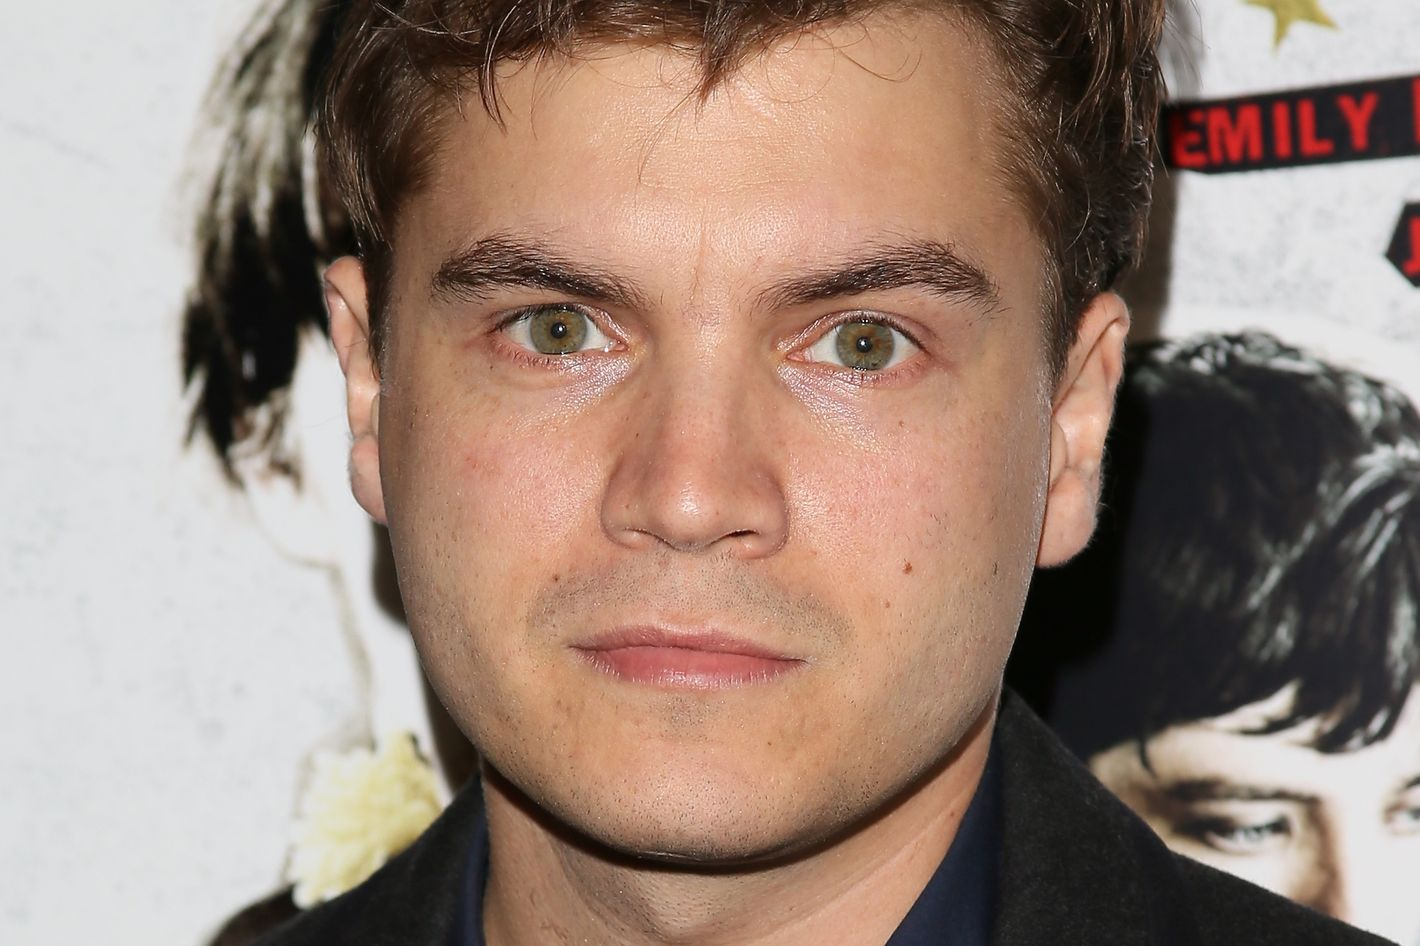 Emile Hirsch Pleads Guilty To Assaulting Female Executive At Sundance